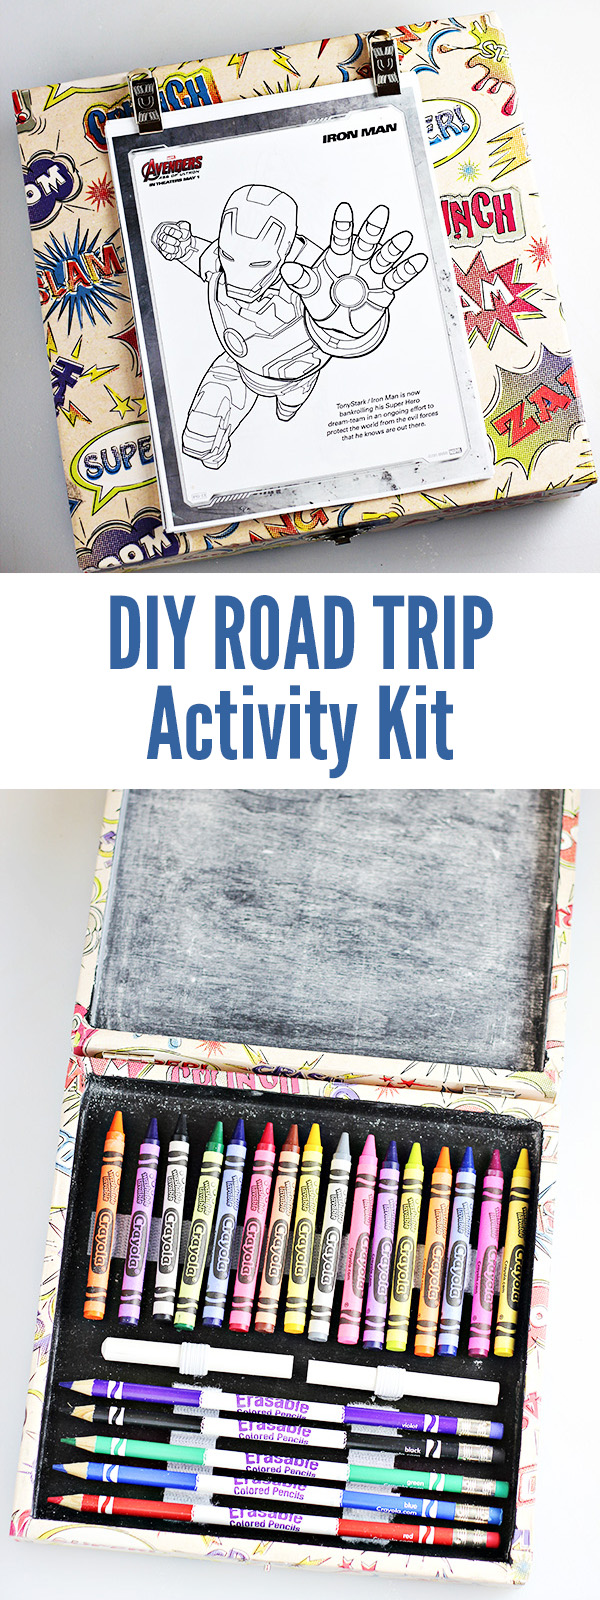 DIY Road Trip Activity Kit for Kids